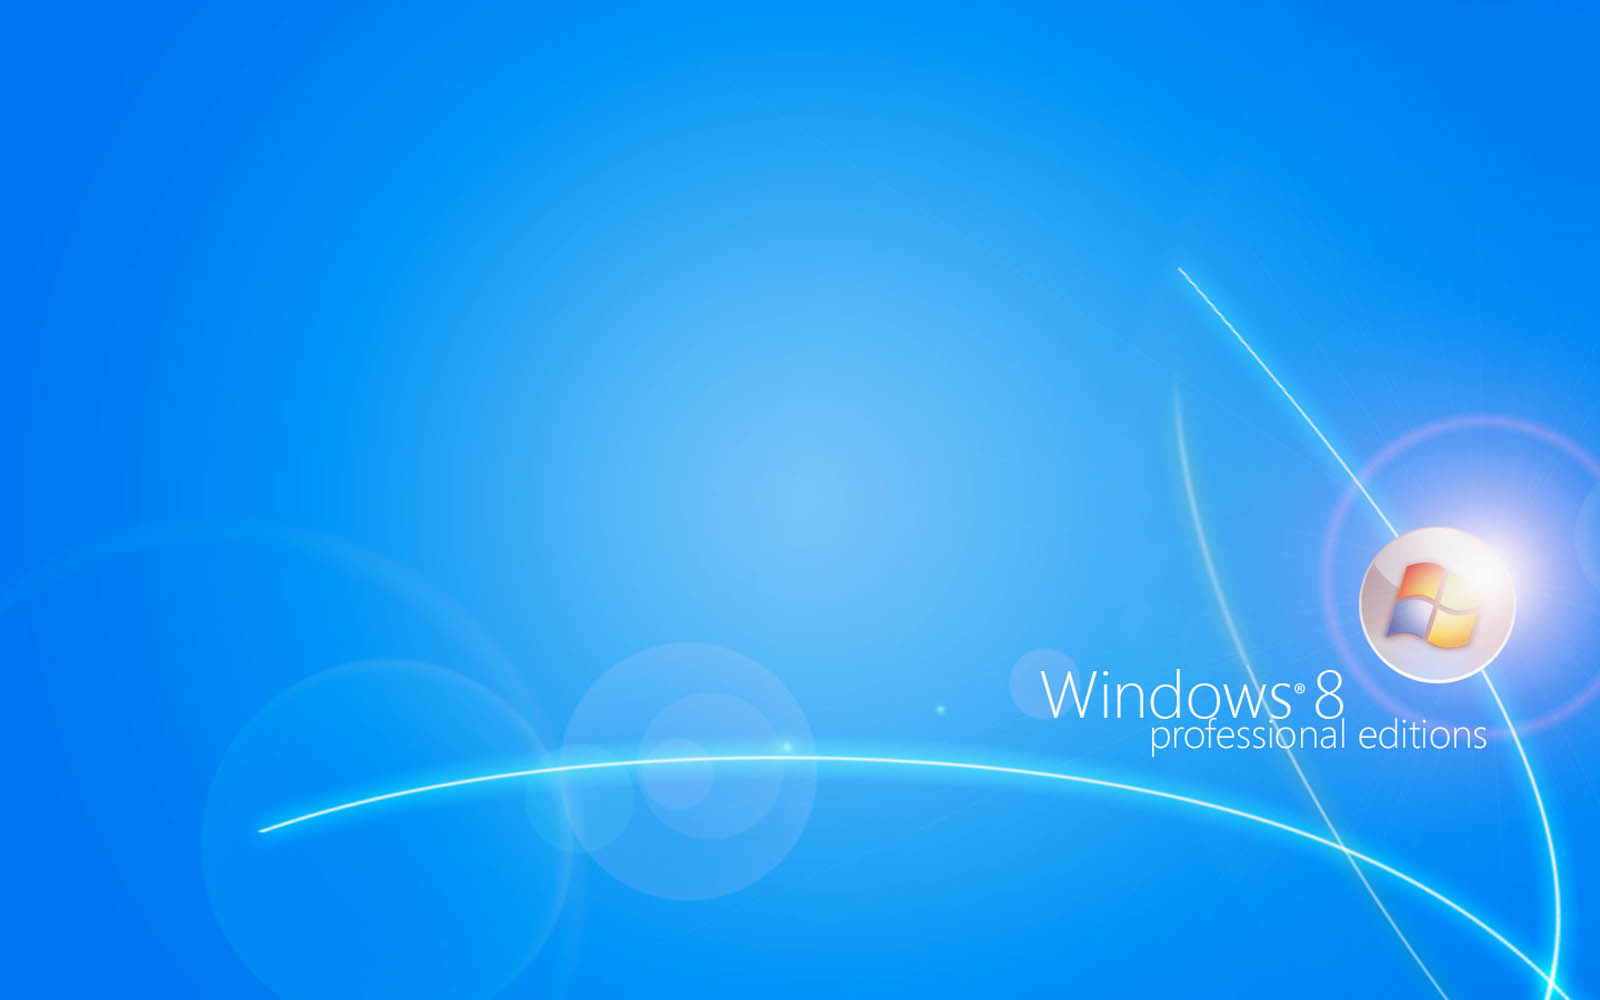 Wallpapers windows 8 wallpapers for Window background